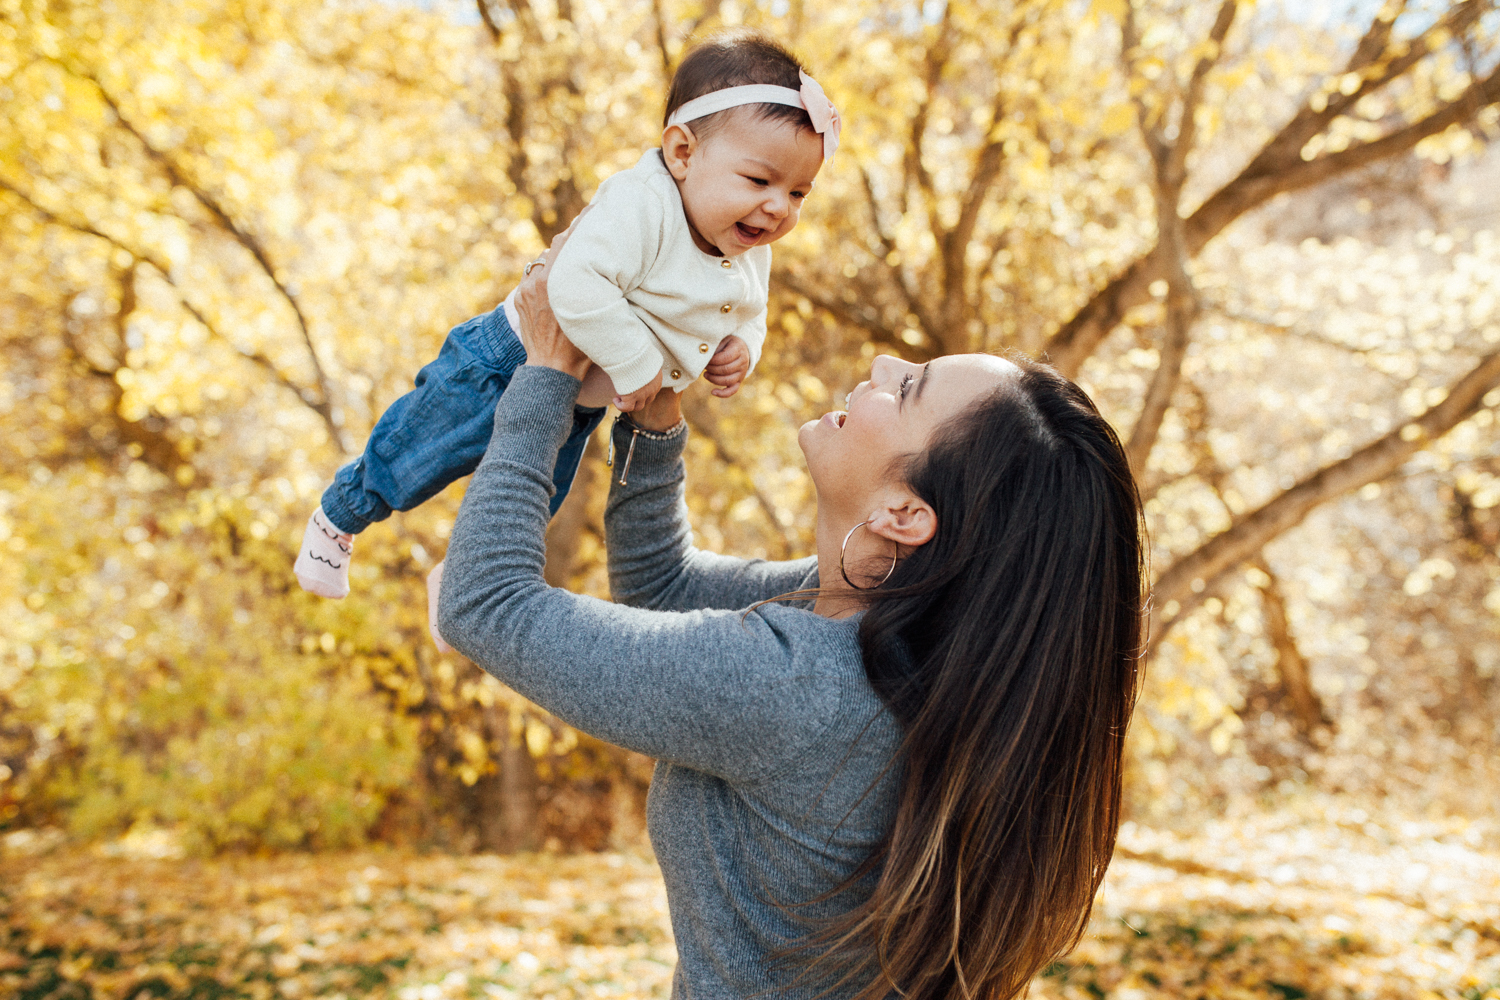 mother-holding-baby-girl-in-air-fall-leaves-rotary-geln-park-slc-ut